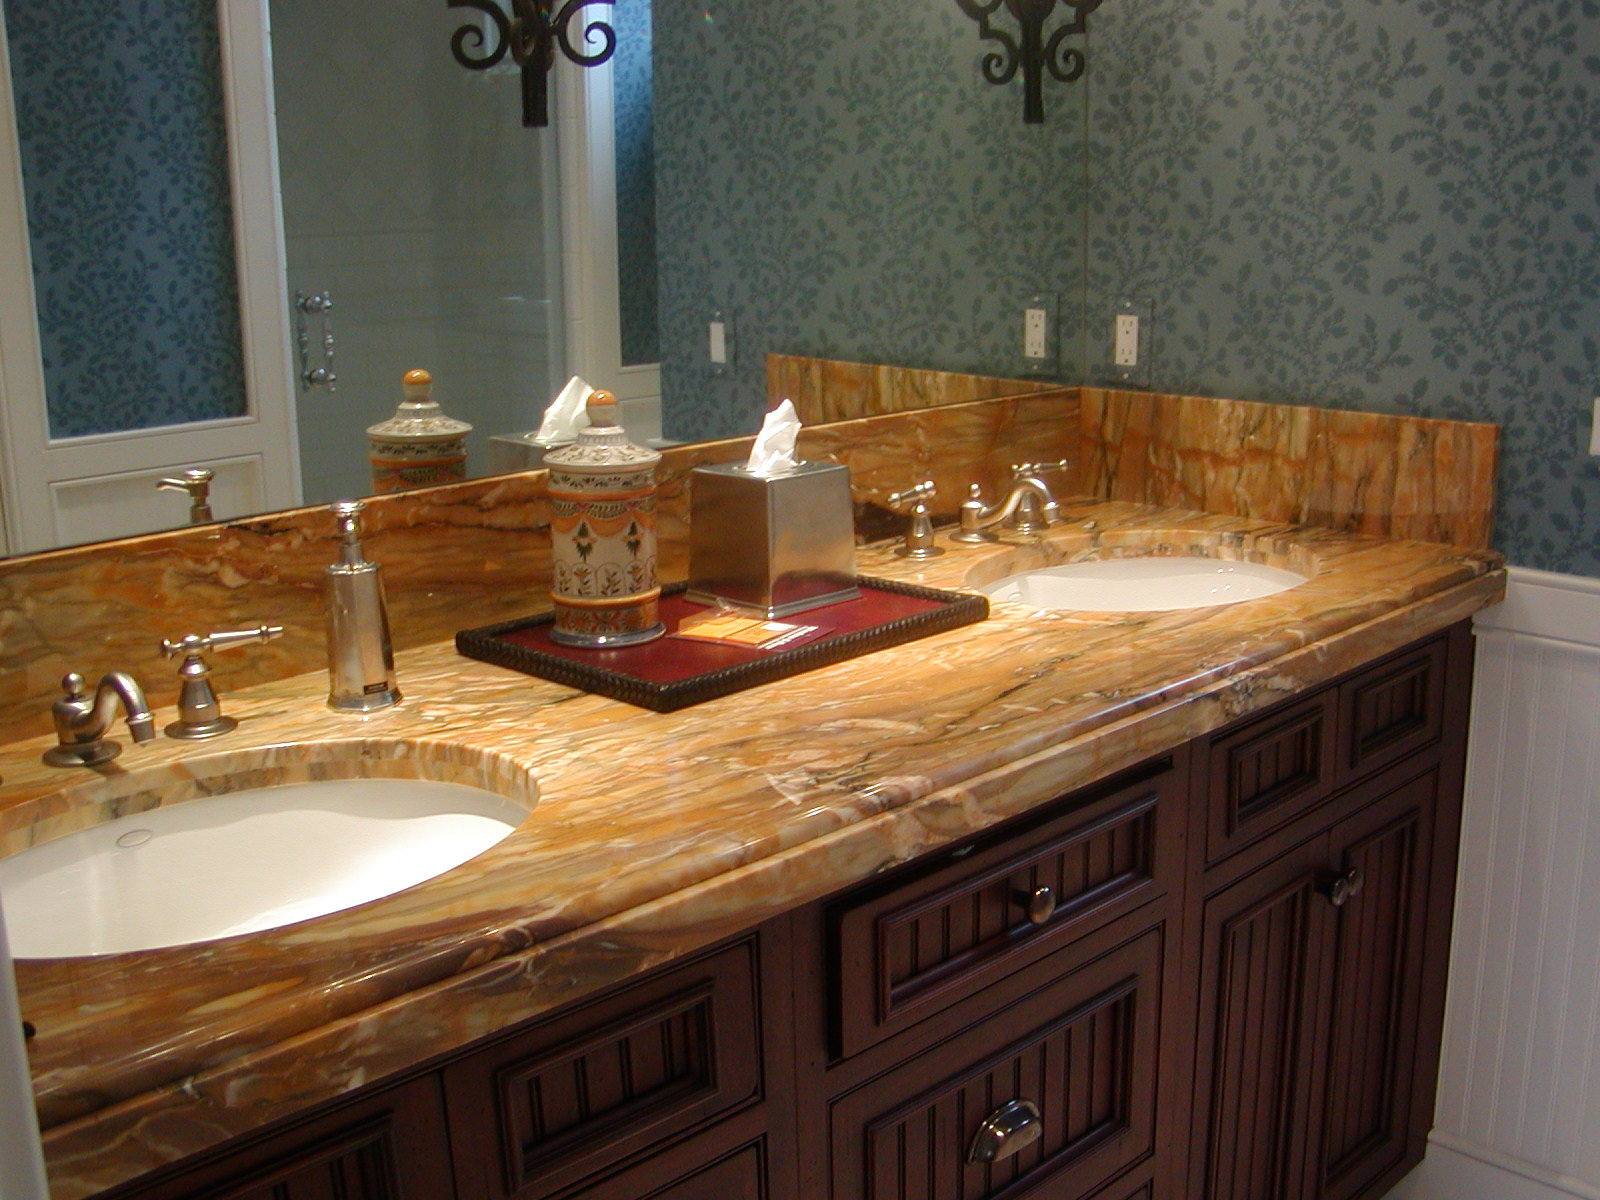 Bathroom sinks with options for everyone - Marble Vanity Custom Edge And Undermount Sink